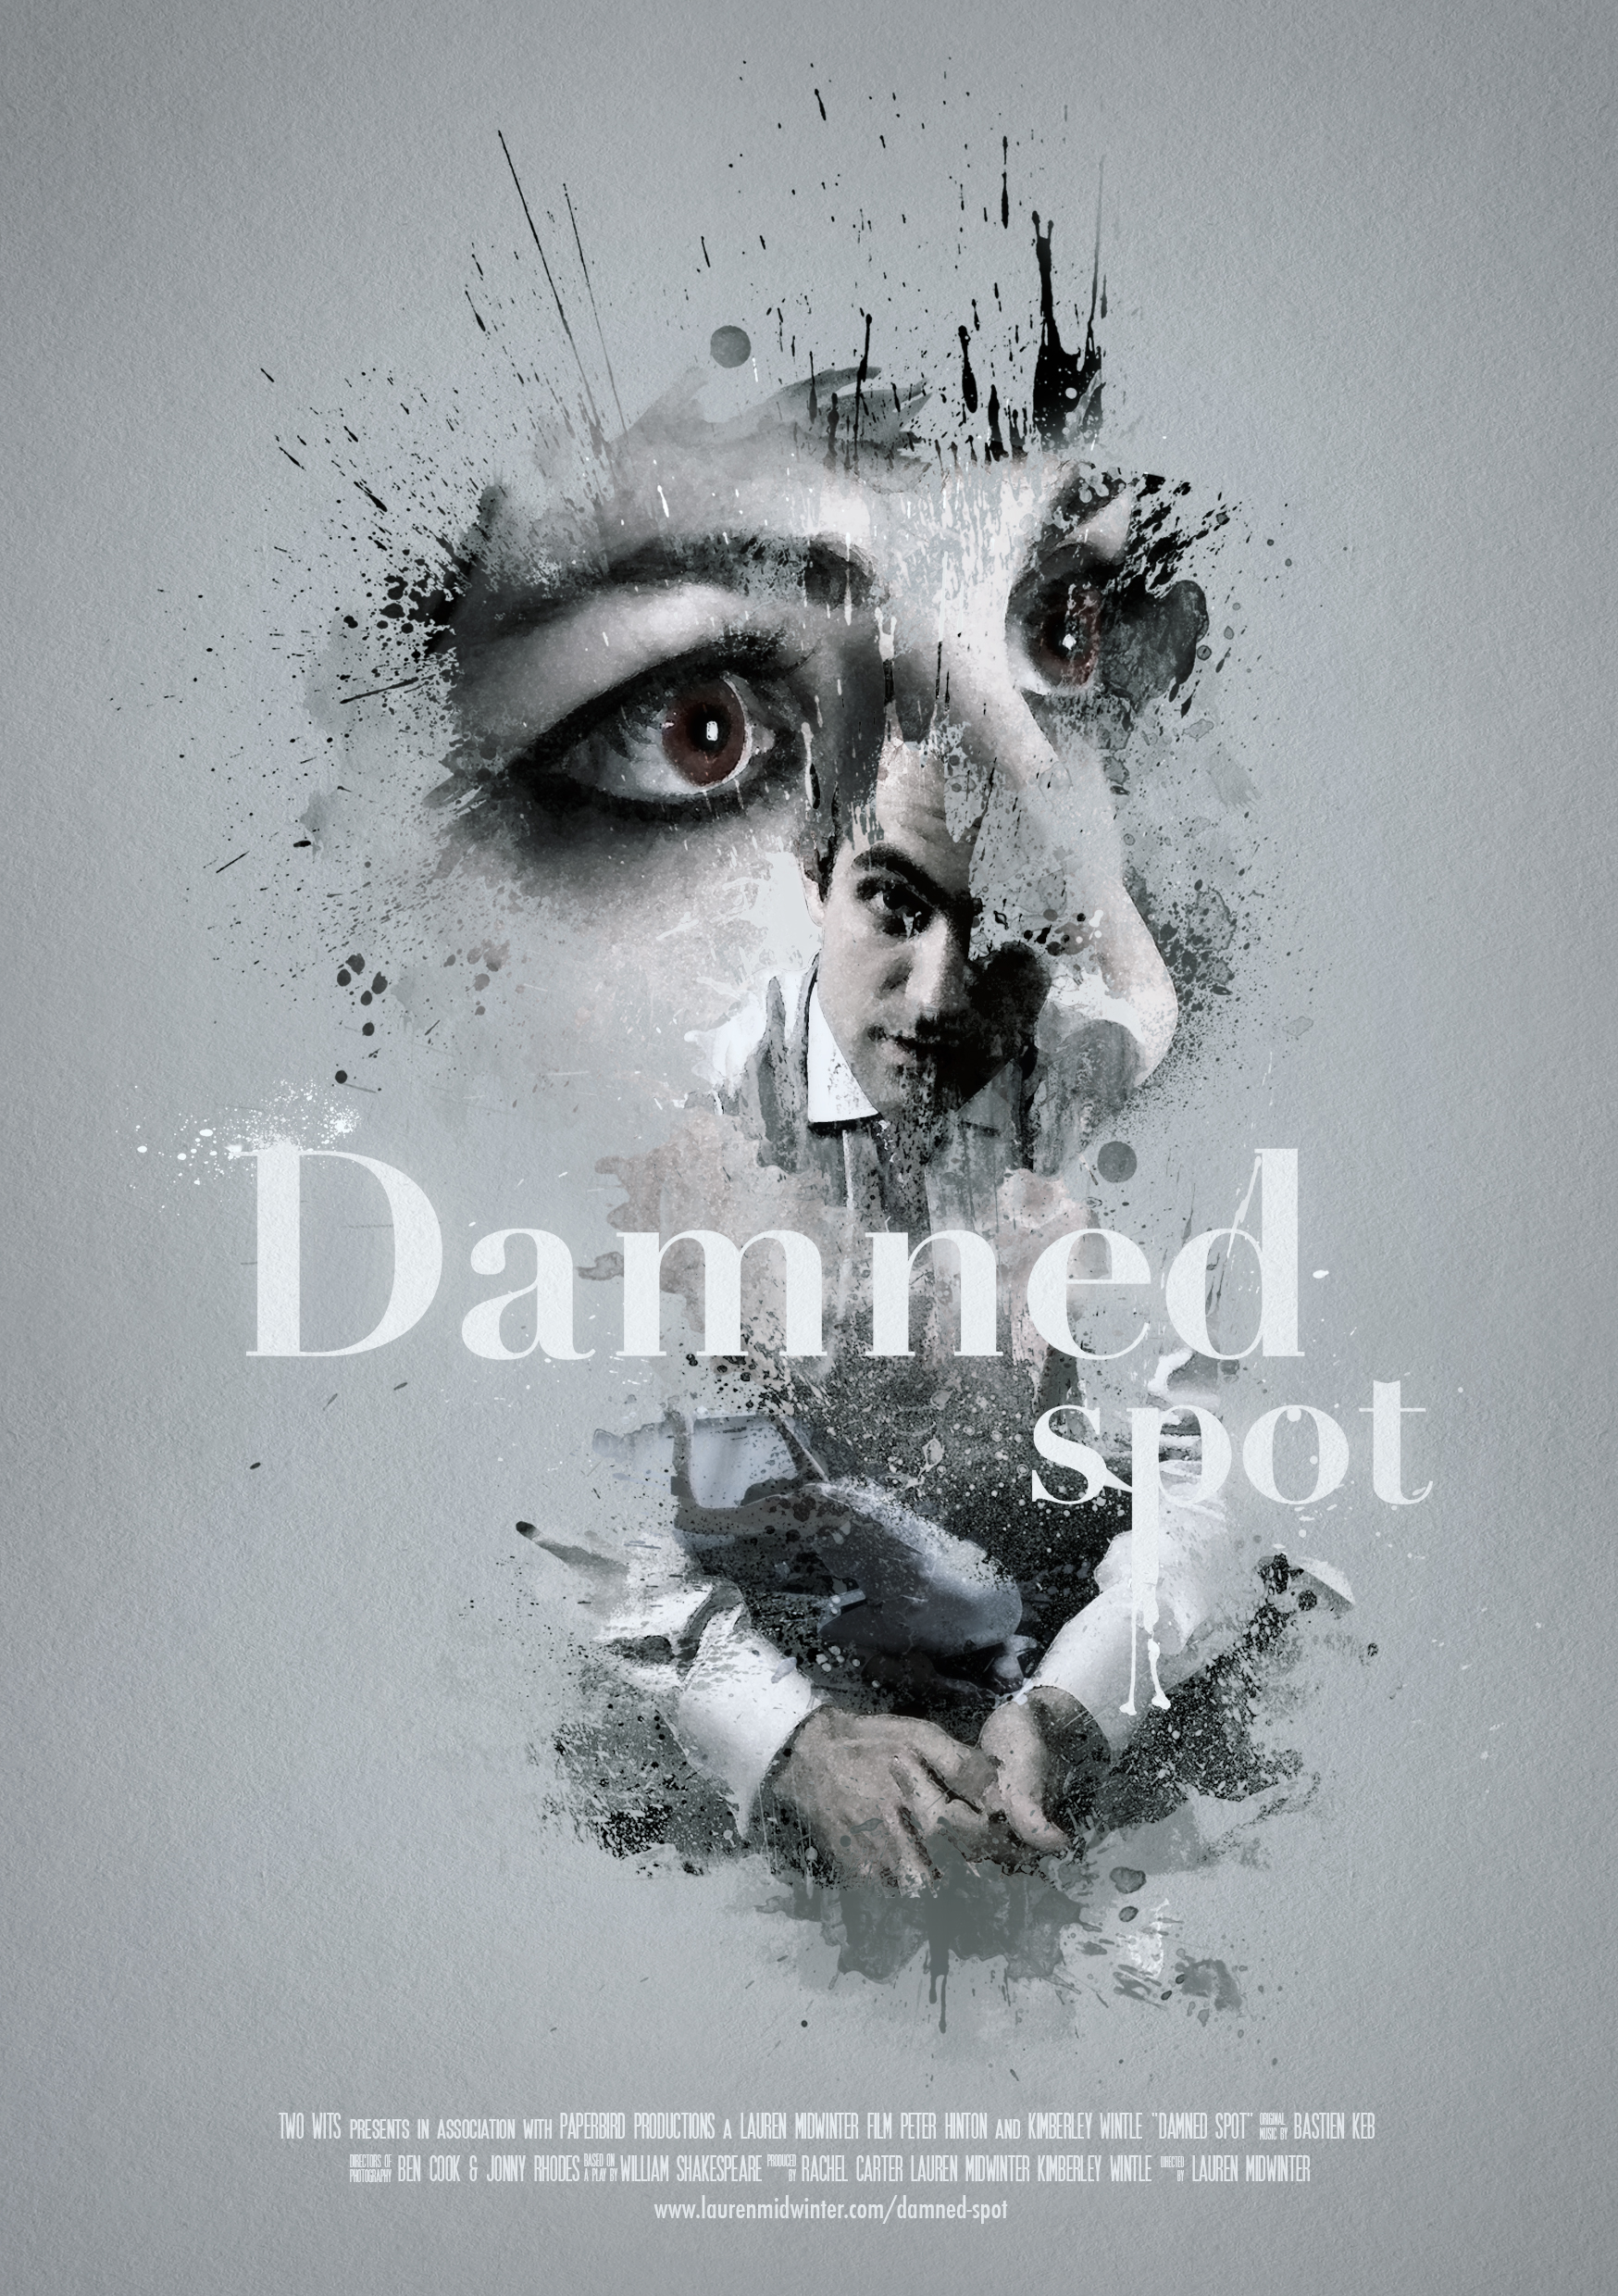 'Damned spot' artwork by Luke Harmer